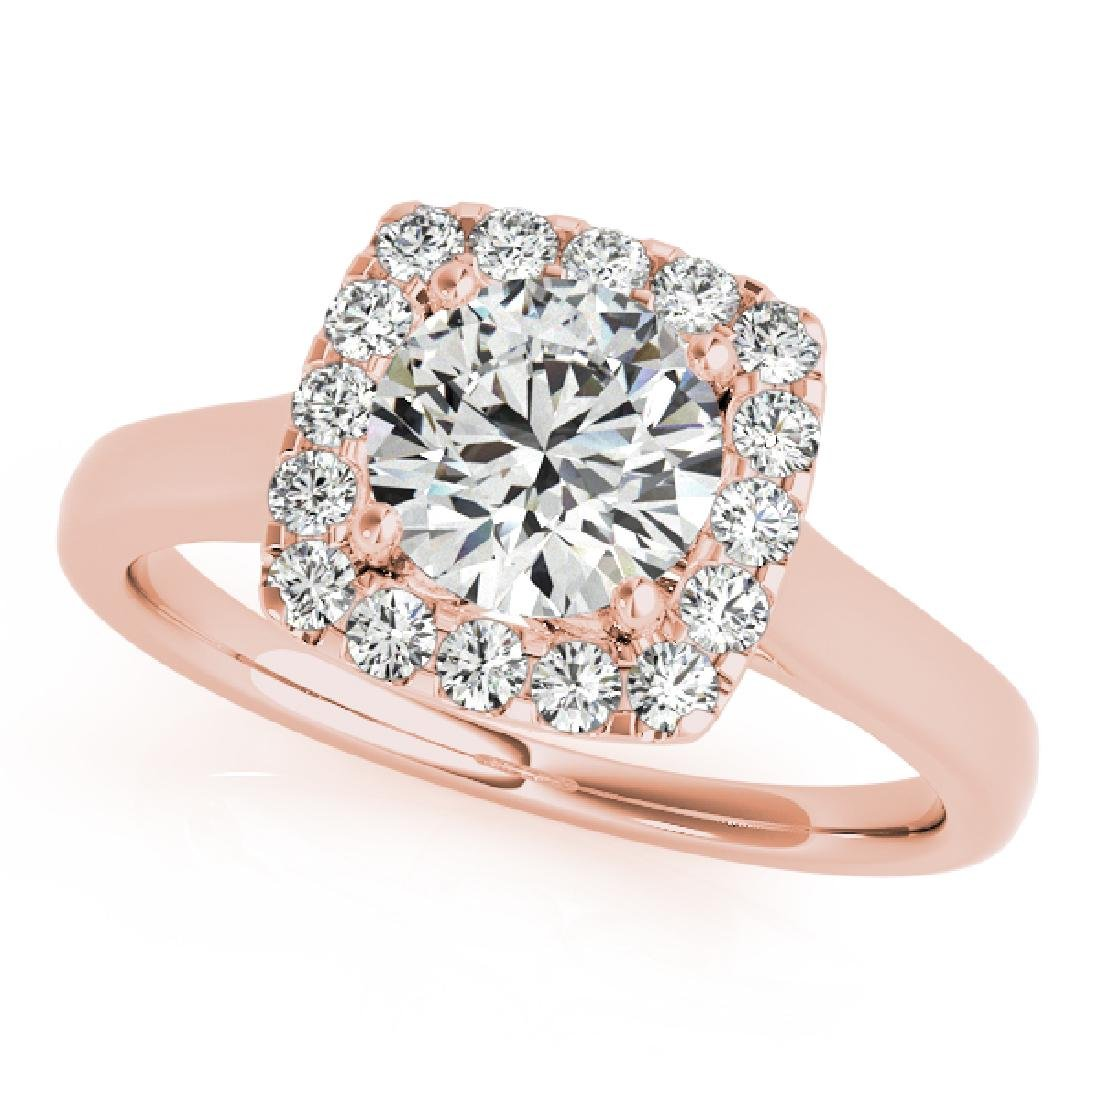 CERTIFIED 18K ROSE GOLD 1.57 CT G-H/VS-SI1 DIAMOND HALO